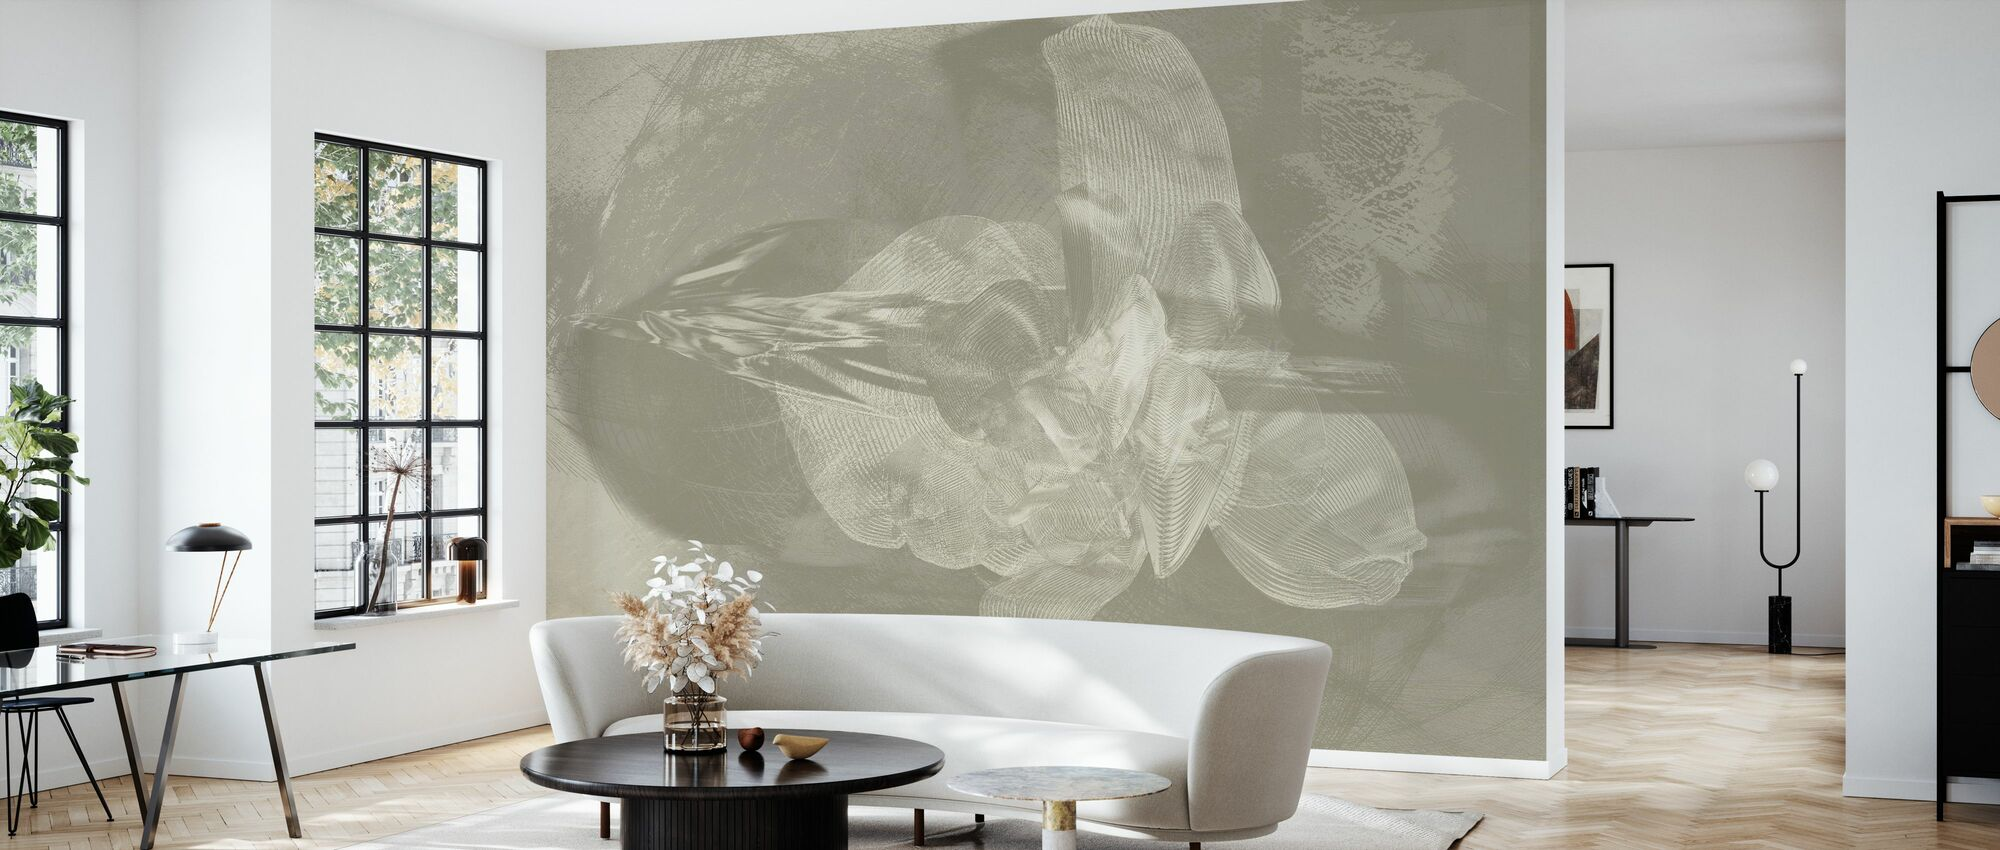 Orchidee Chaos - Tritone - Behang - Woonkamer